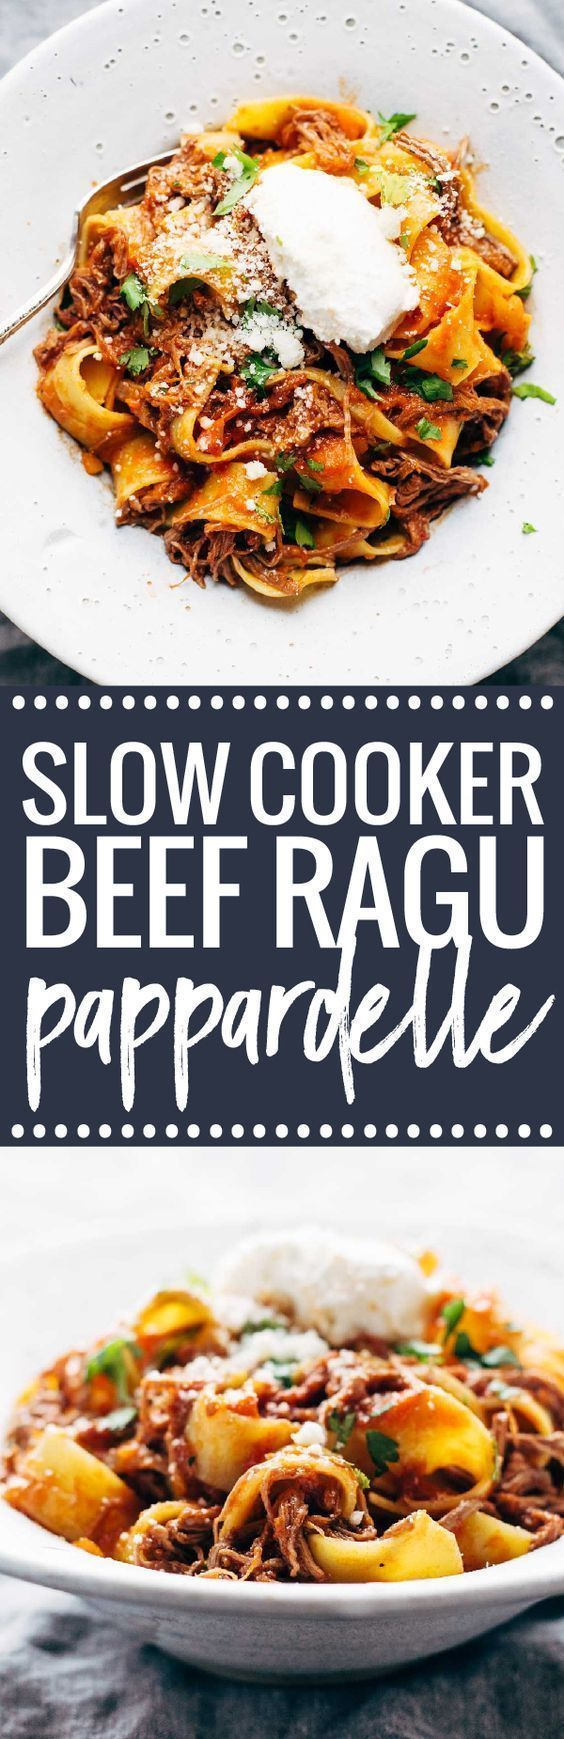 Slow Cooker Beef Ragu with Pappardelle - easy comfort food from the new Skinnytaste cookbook! | http://pinchofyum.com